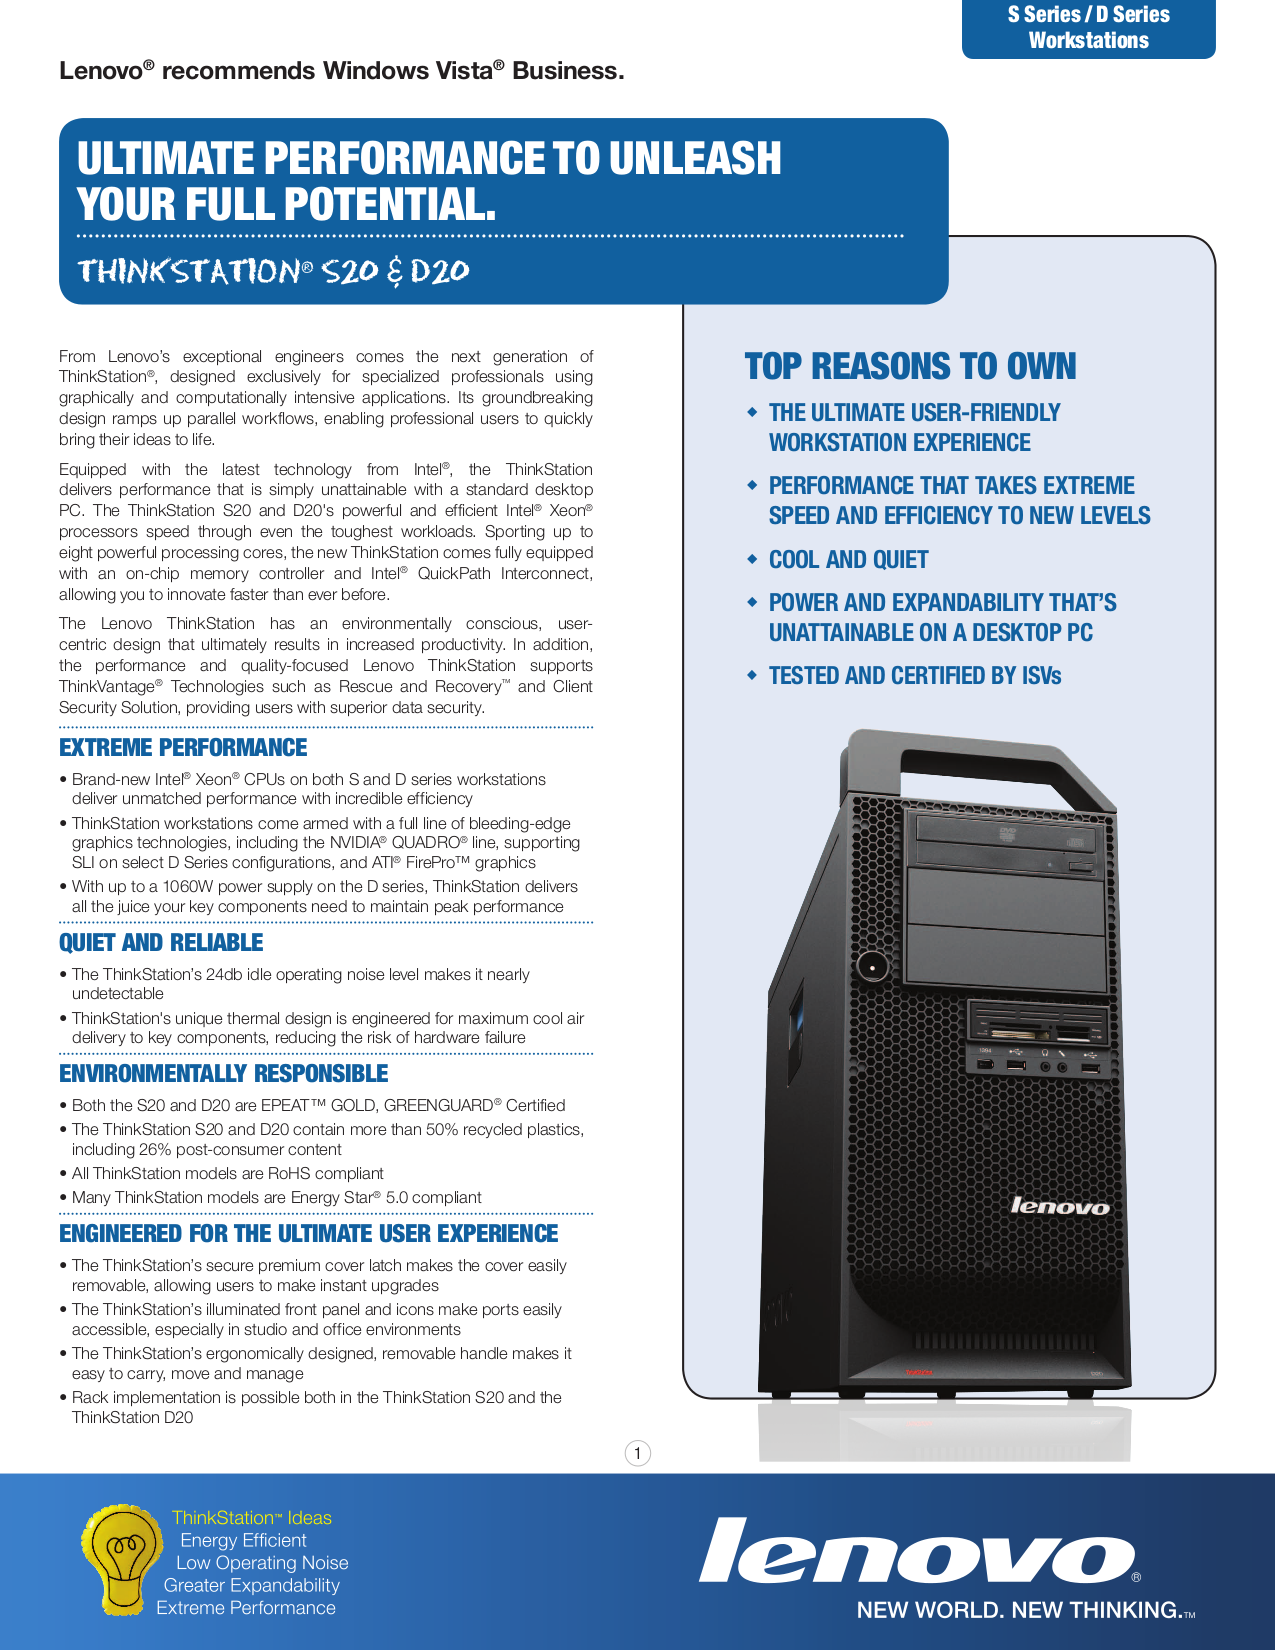 pdf for Lenovo Desktop ThinkStation D20 4158 manual